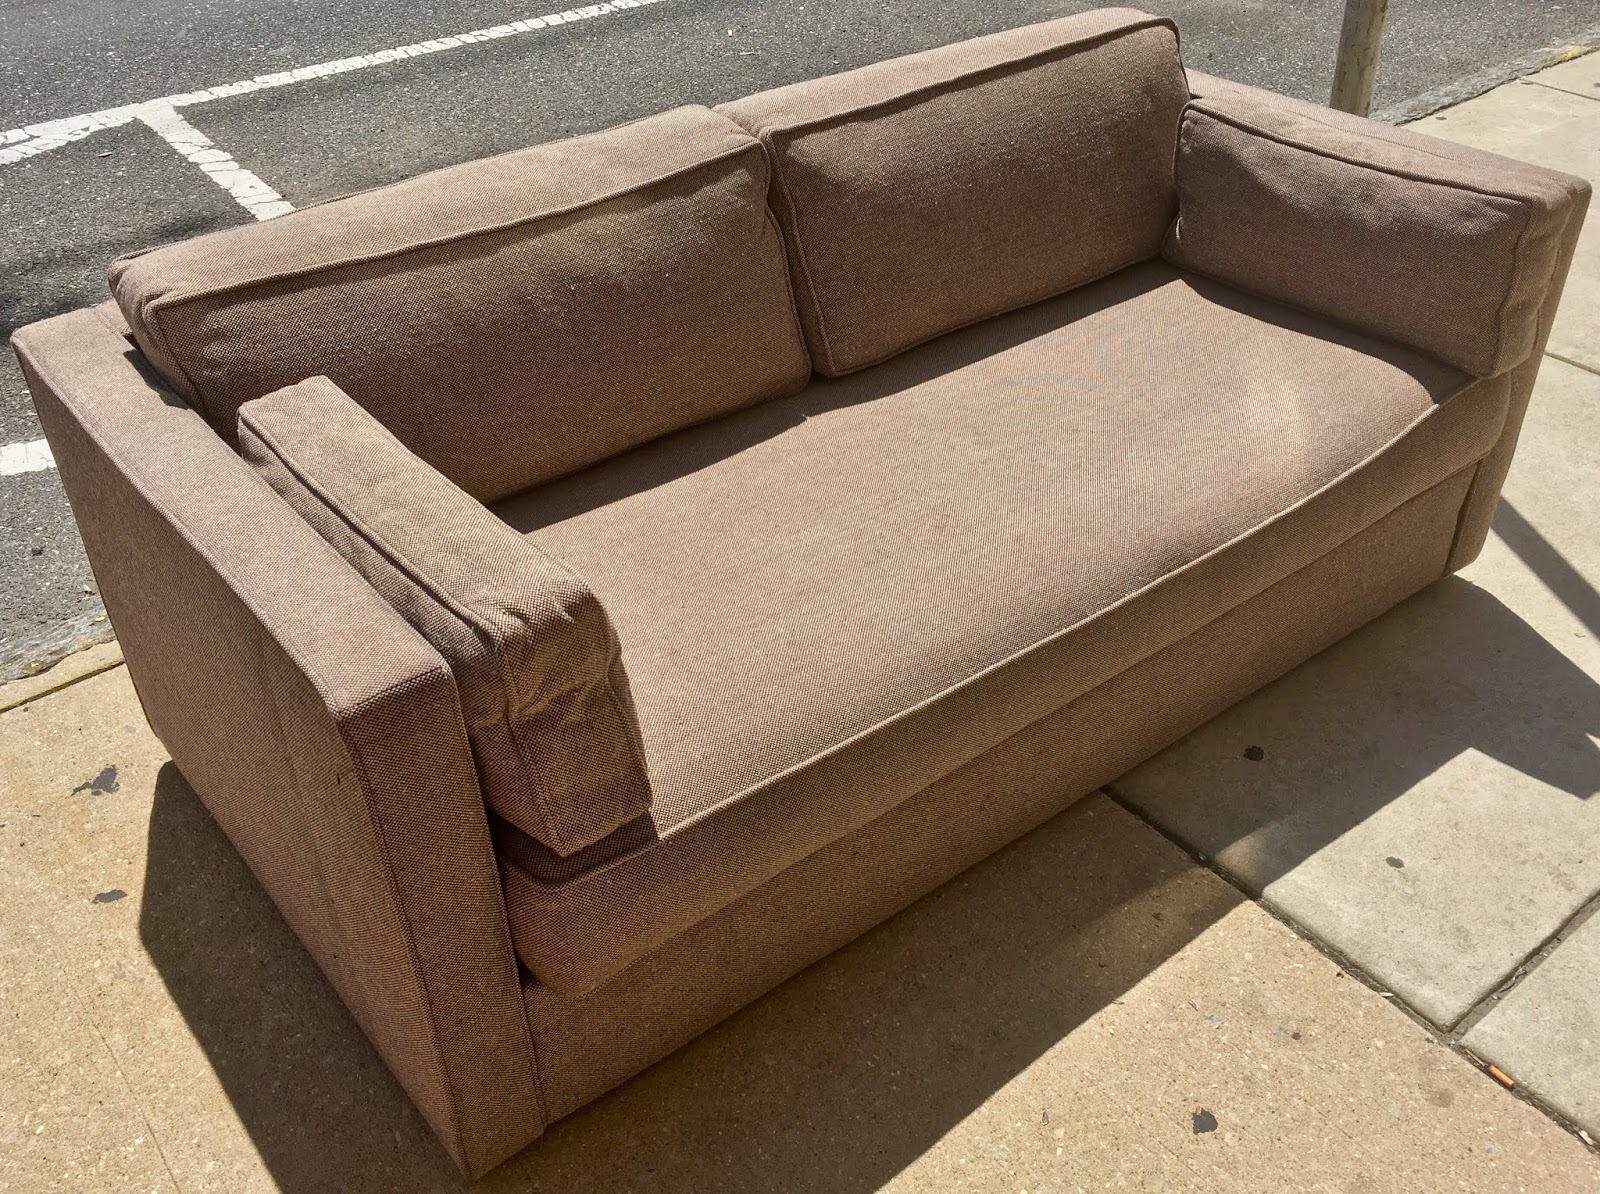 Awesome Uhuru Furniture Collectibles Tuxedo Style Couch 175 Sold Caraccident5 Cool Chair Designs And Ideas Caraccident5Info